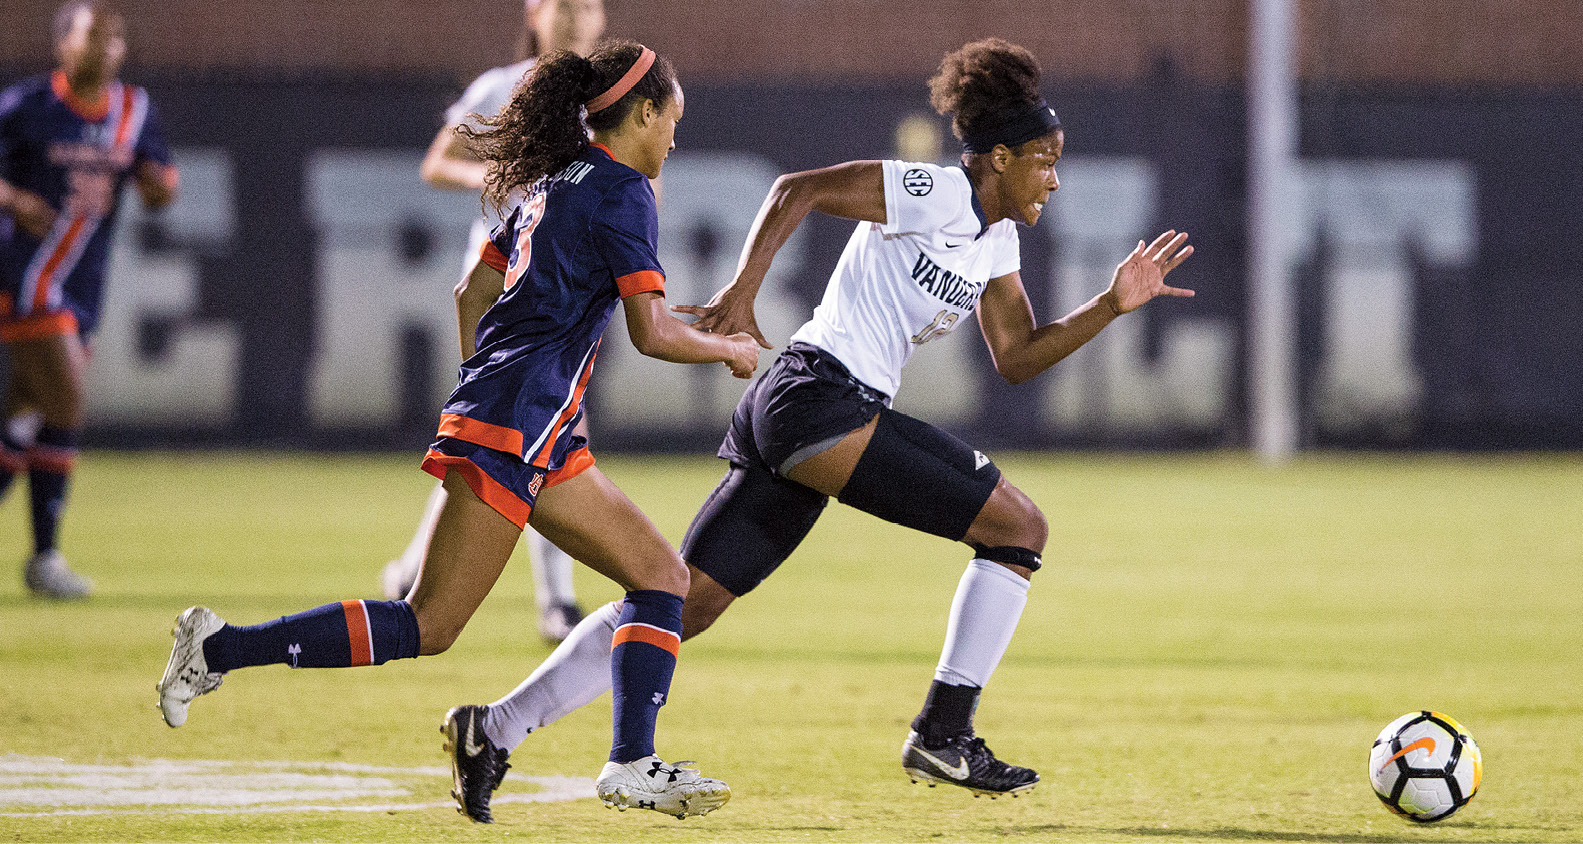 Simone Charley heads downfield last October, helping the Commodores defeat Auburn 2–1 and clinching the No. 4 seed in the SEC Tournament. (JOE HOWELL)